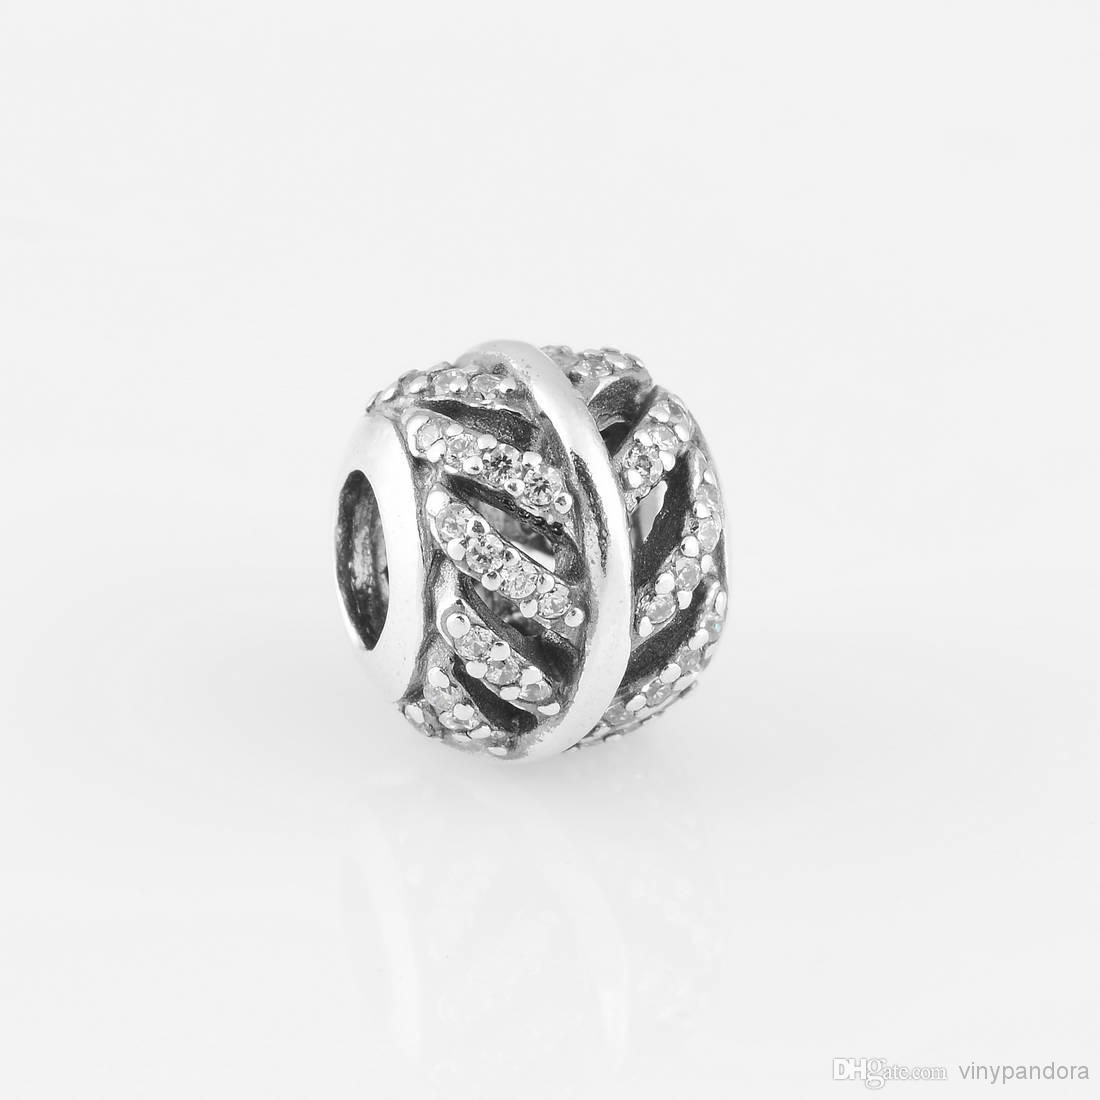 9477735c5 release date wholesale metals buy authentic 925 ale sterling silverlight as  feather bead with clear micro